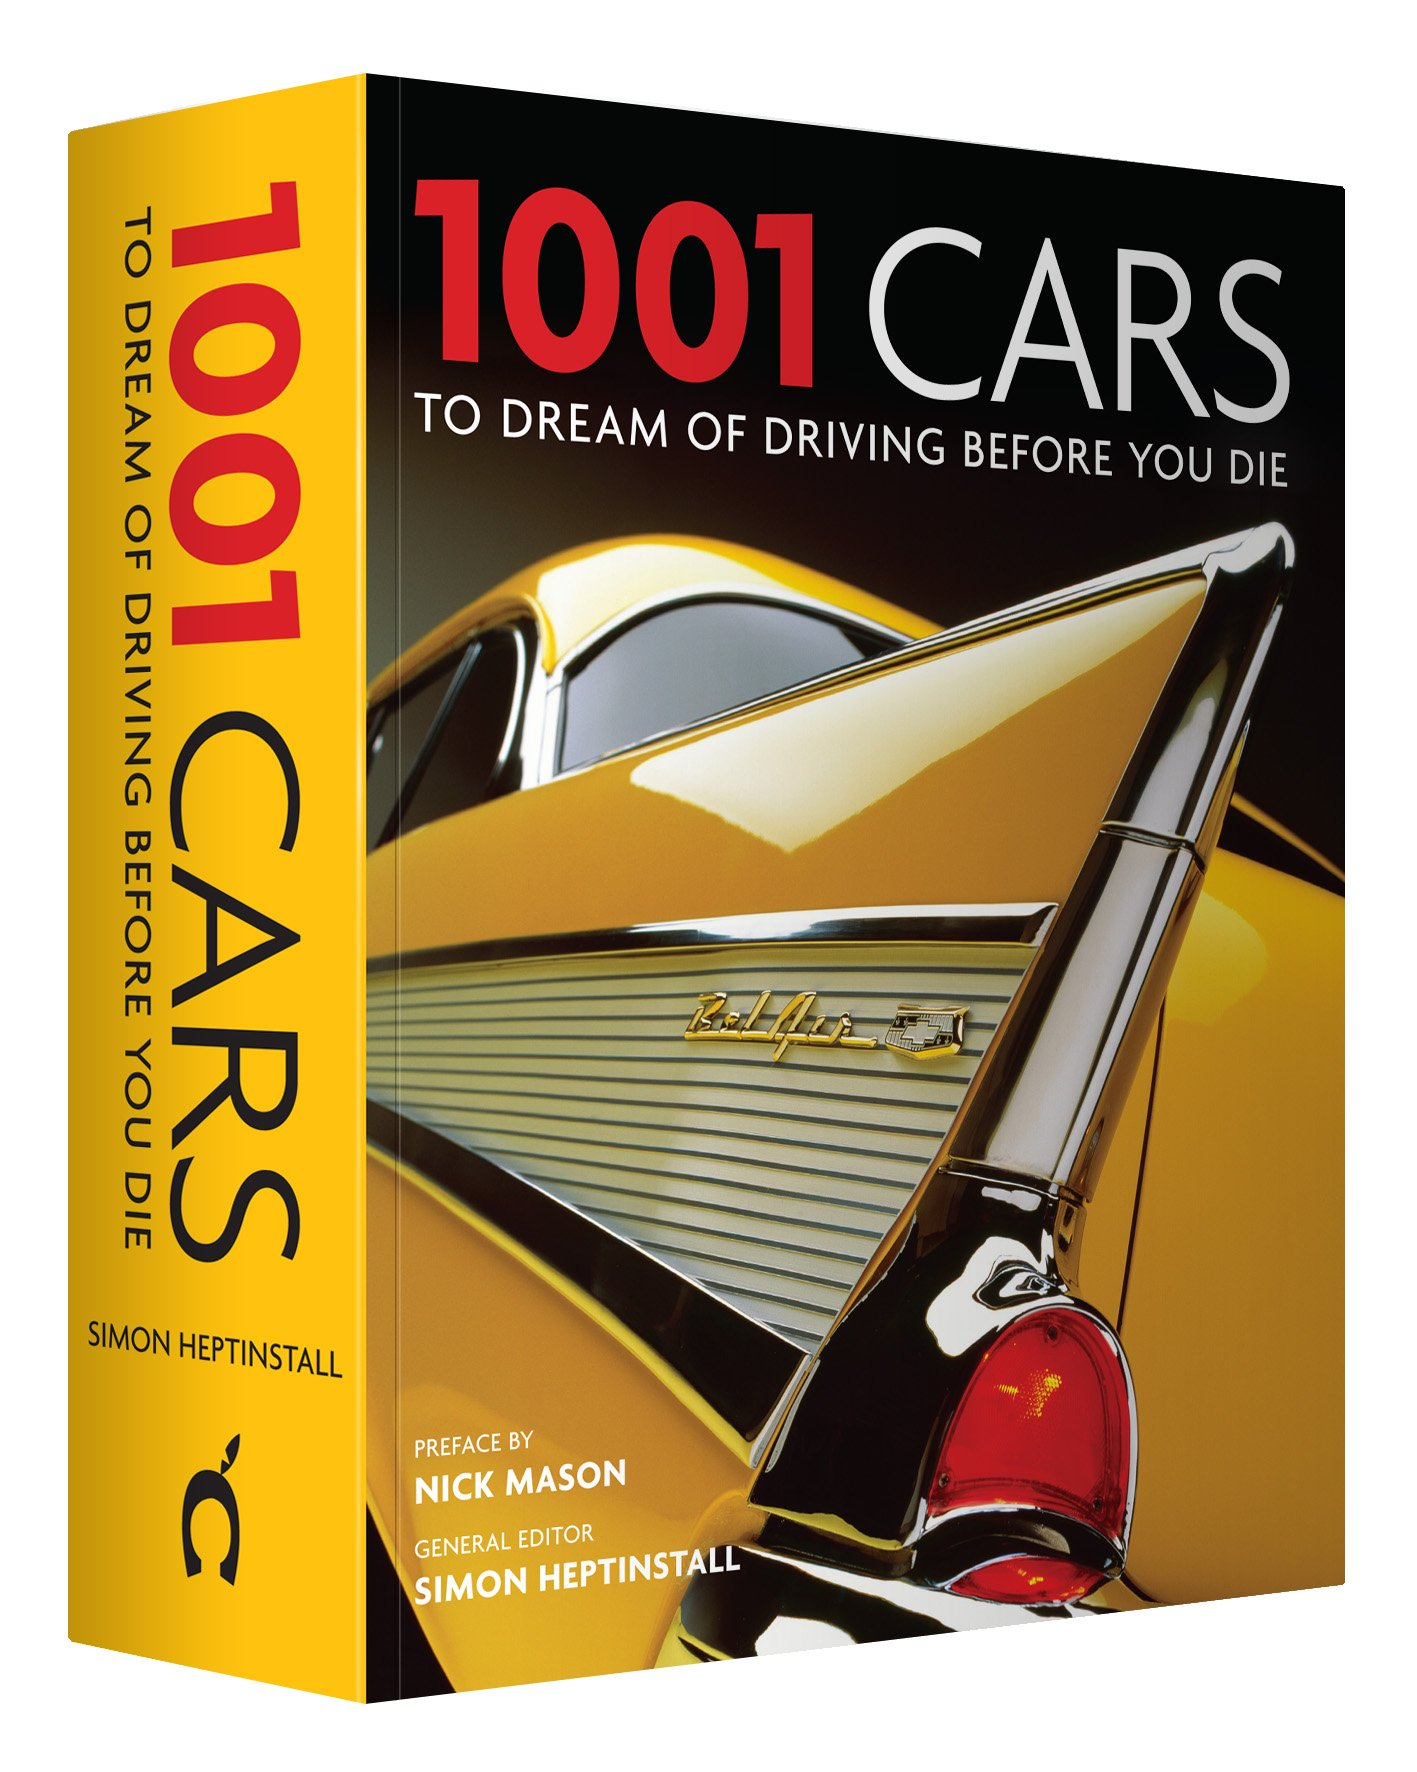 1001 Cars To Dream of Driving Before You Die: Amazon.co.uk: Simon  Heptinsall: 9781844037247: Books